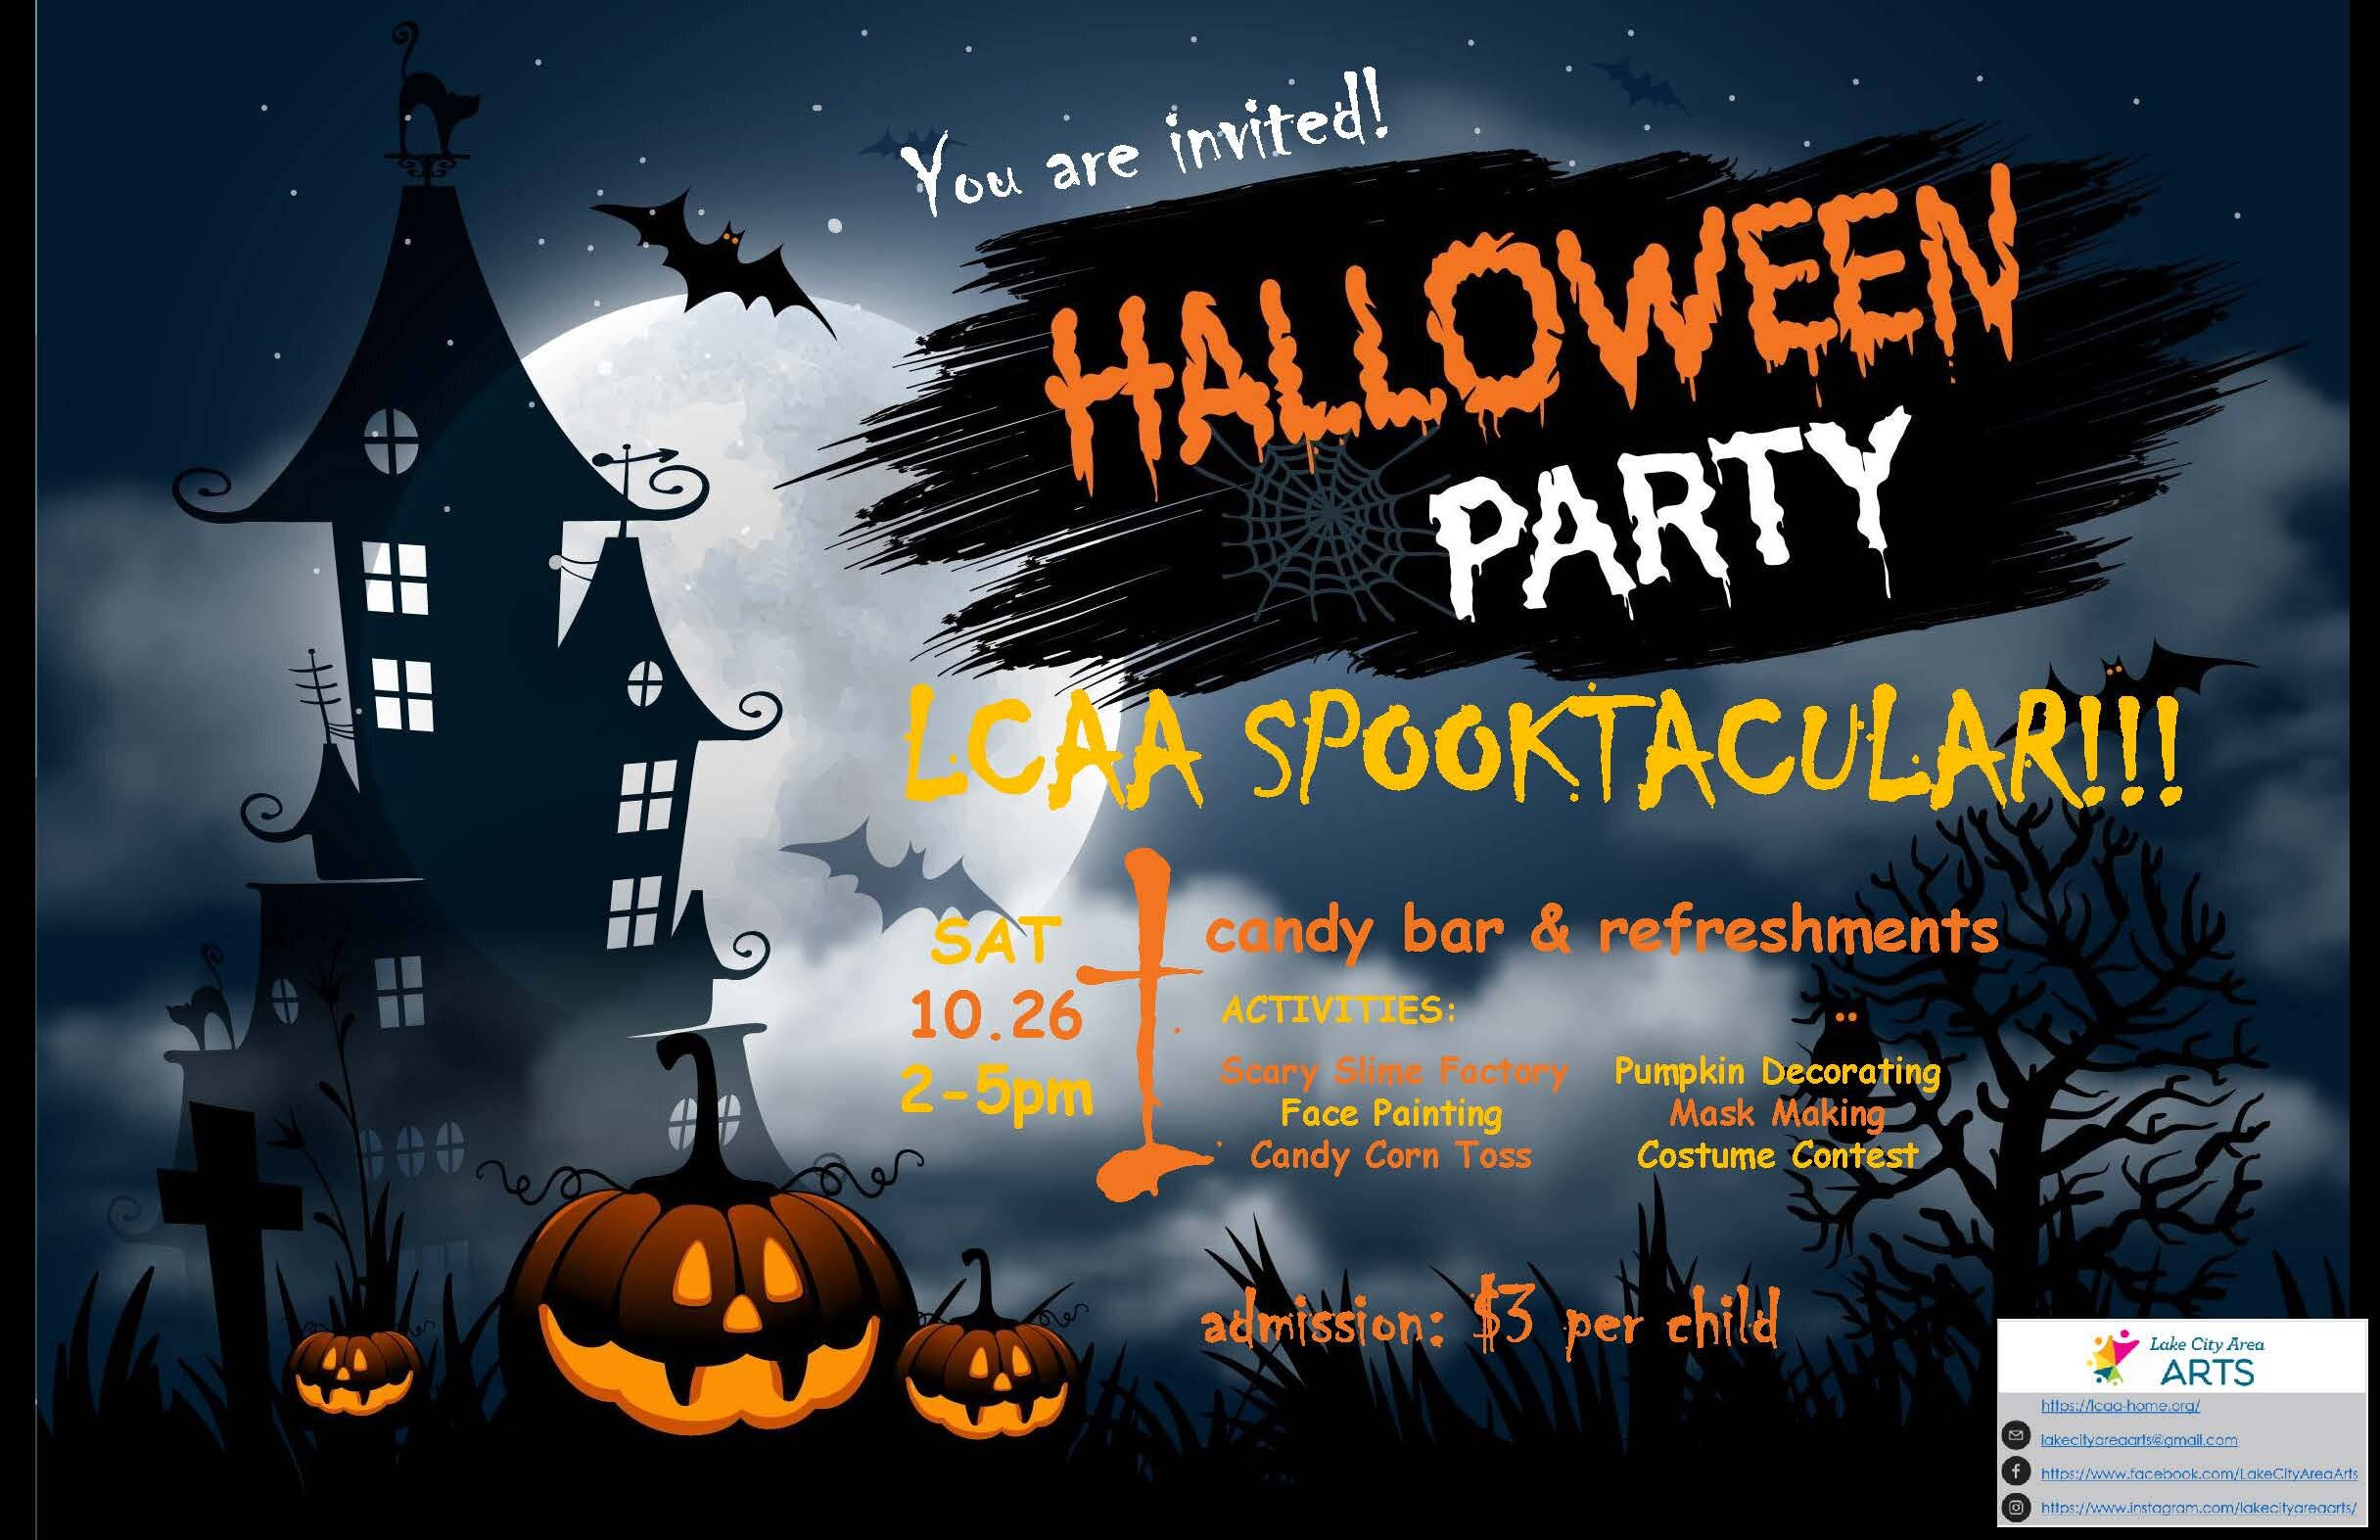 Come join us for some family fun at the LCAA Halloween Spooktacular on Saturday 10/26 from 2-5 pm! Please note that admission is $3 per child and the activities are Scary Slime Factor, Pumpkin Decorating, Mask Making, Face Painting, Candy Corn Toss, and Costume Contest!